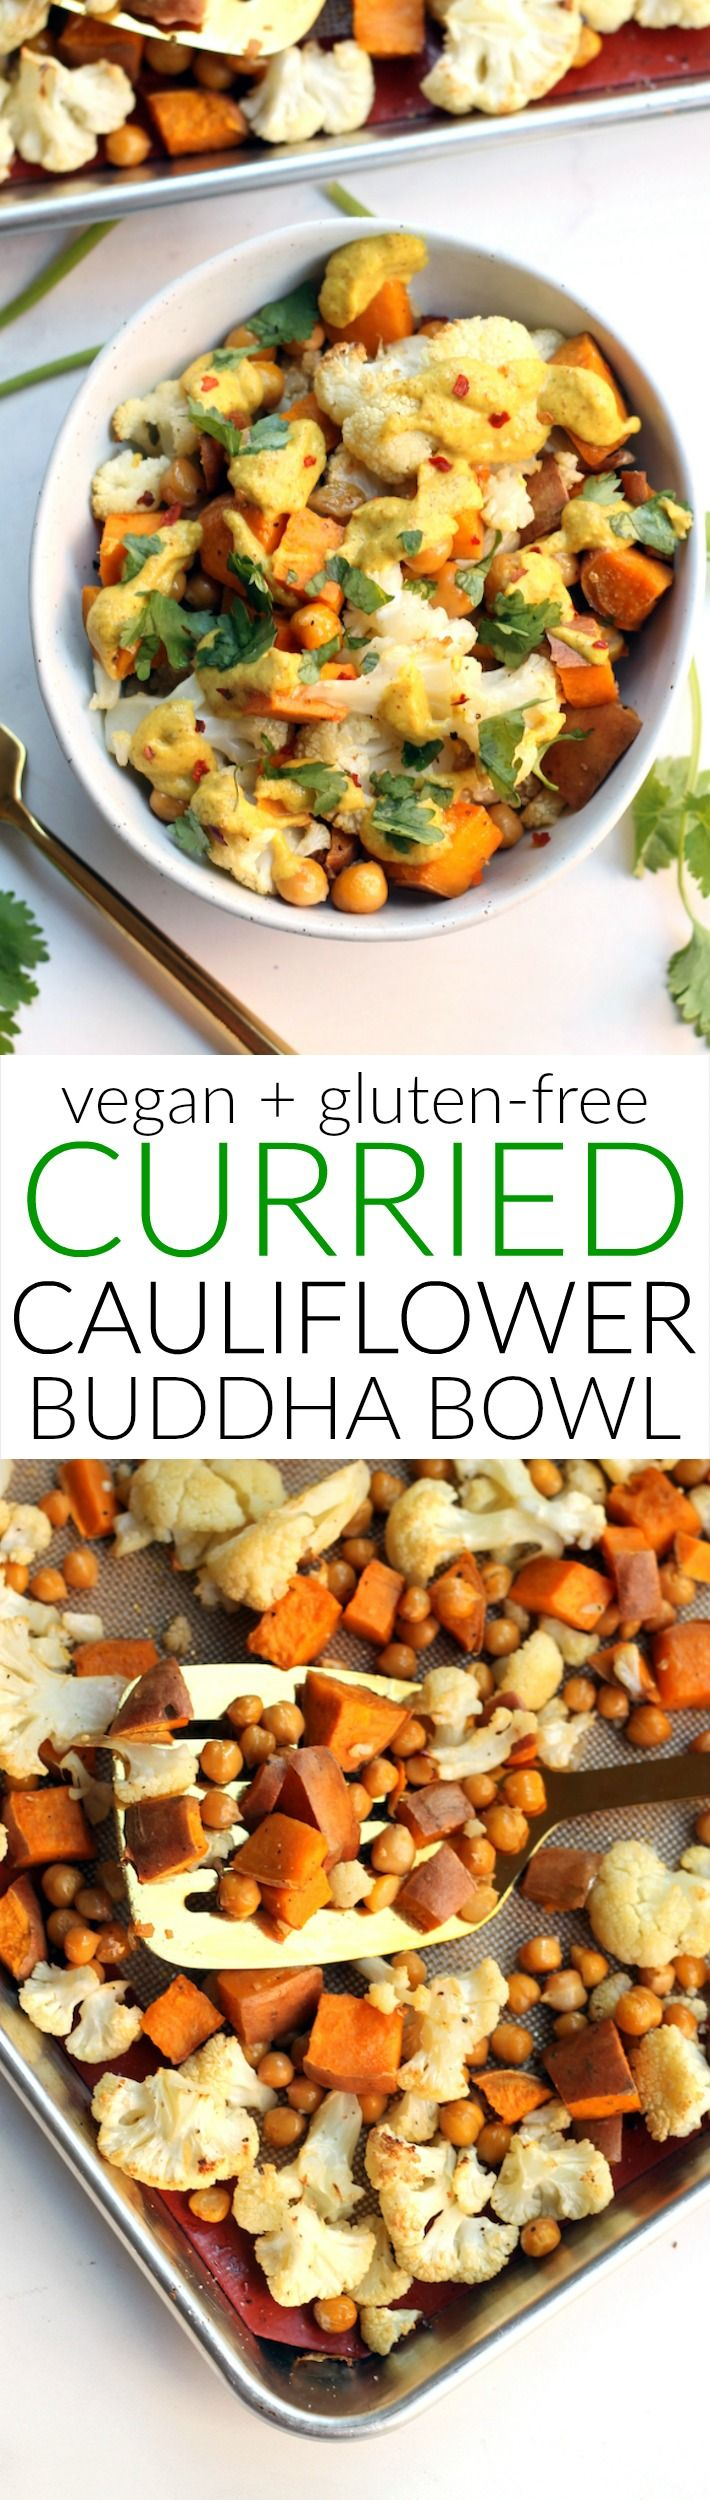 This one pan Curried Cauliflower Chickpea Buddha Bowl is an easy and delicious vegetarian meal that's perfect for work week lunches! Vegan and gluten-free.